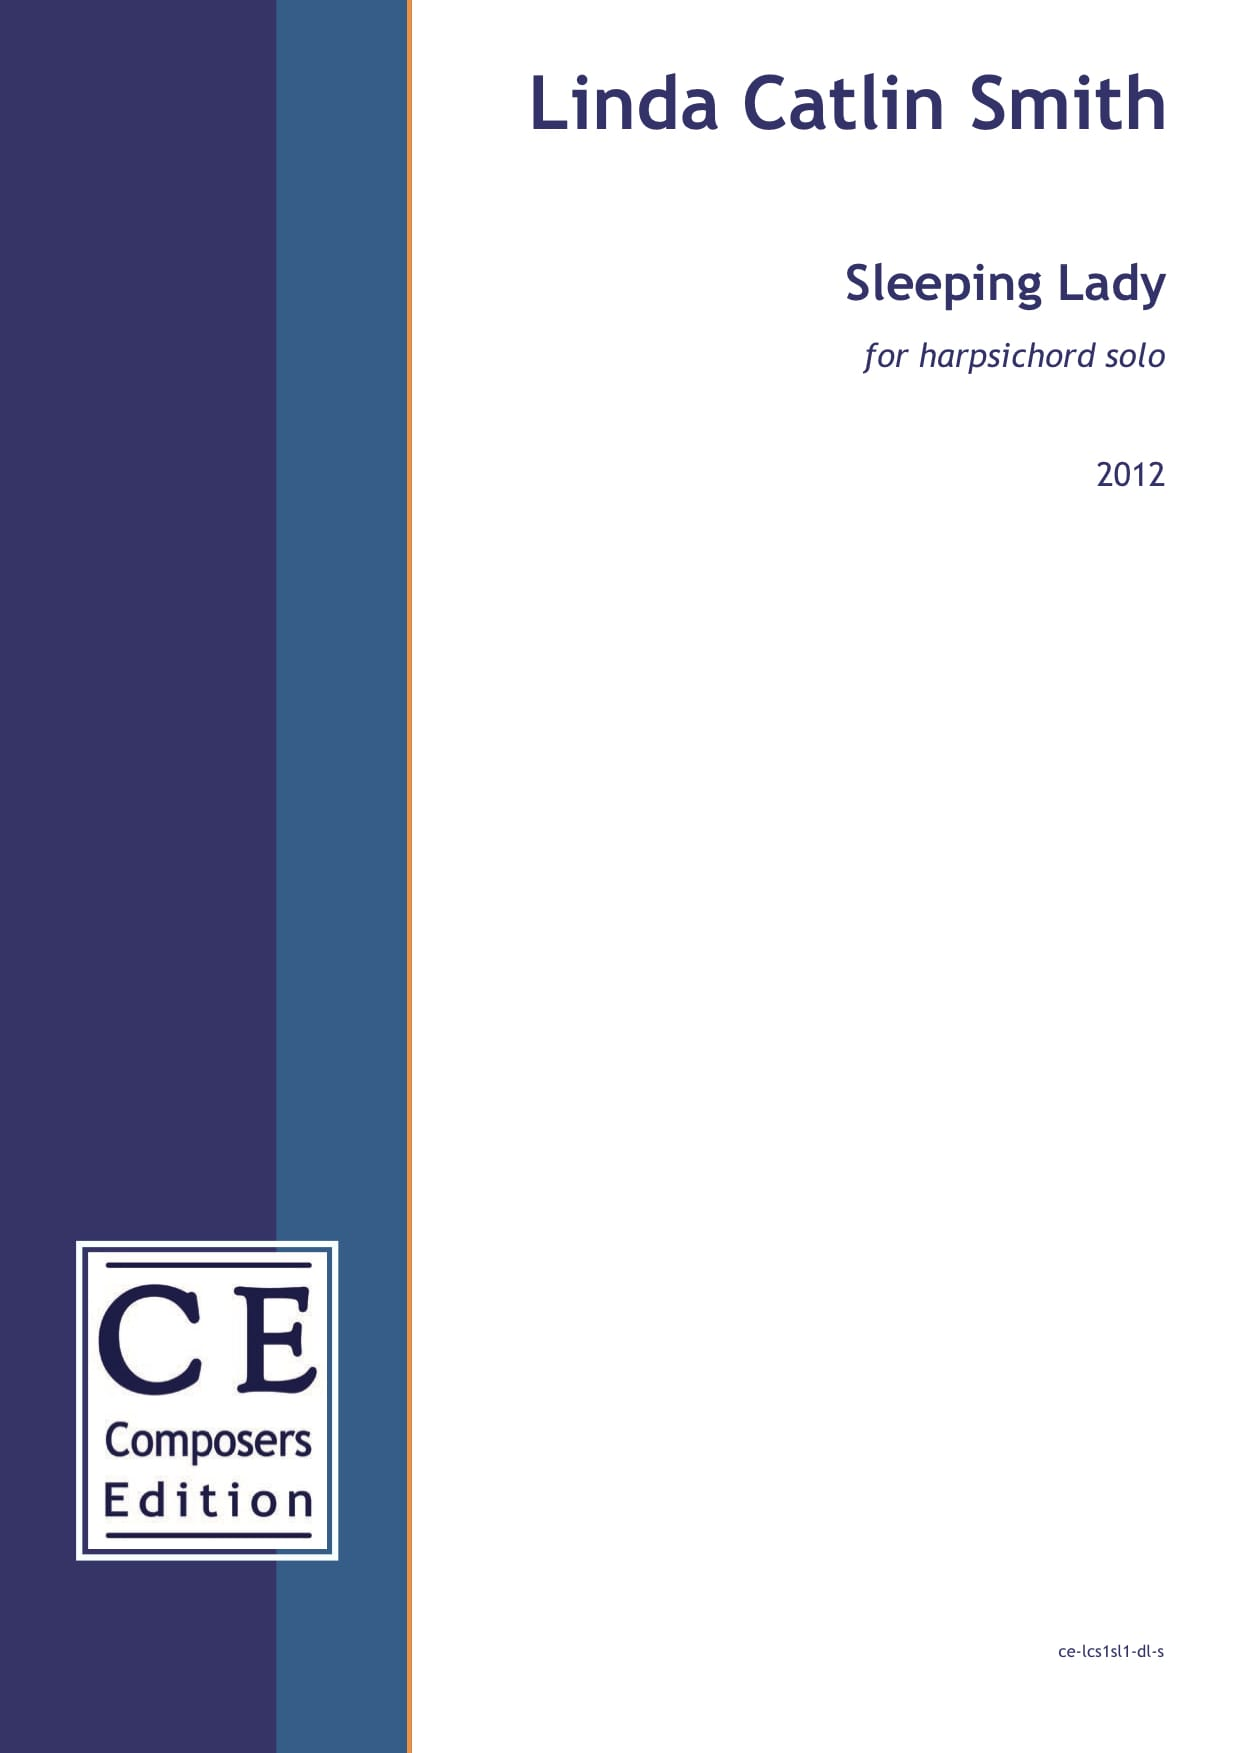 Linda Catlin Smith: Sleeping Lady for harpsichord solo